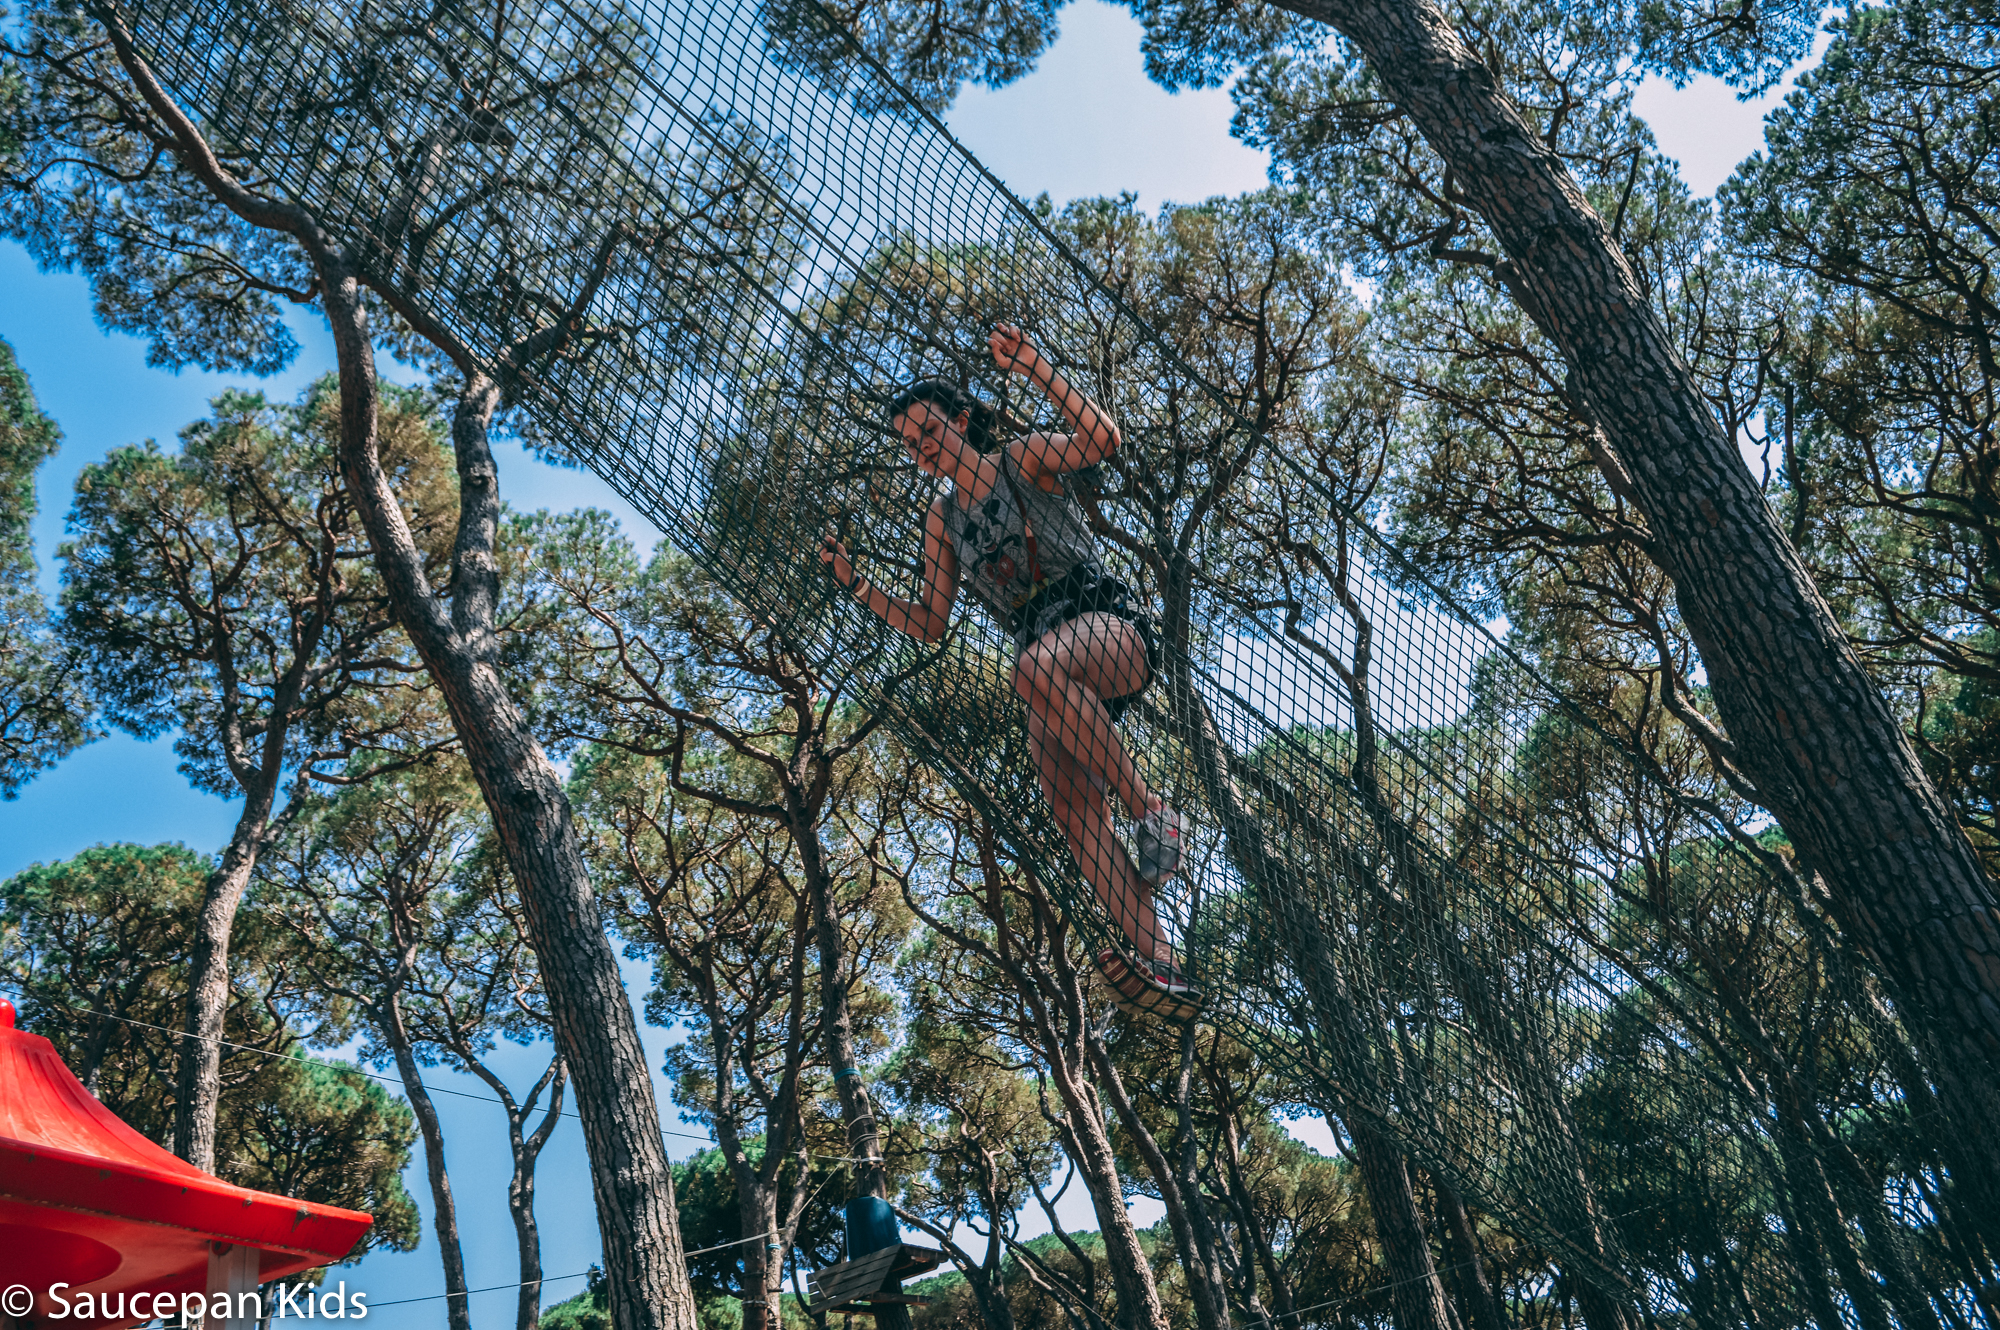 Saucepan Kids trying out the zip line at Parc Albatros - Canvas Holidays